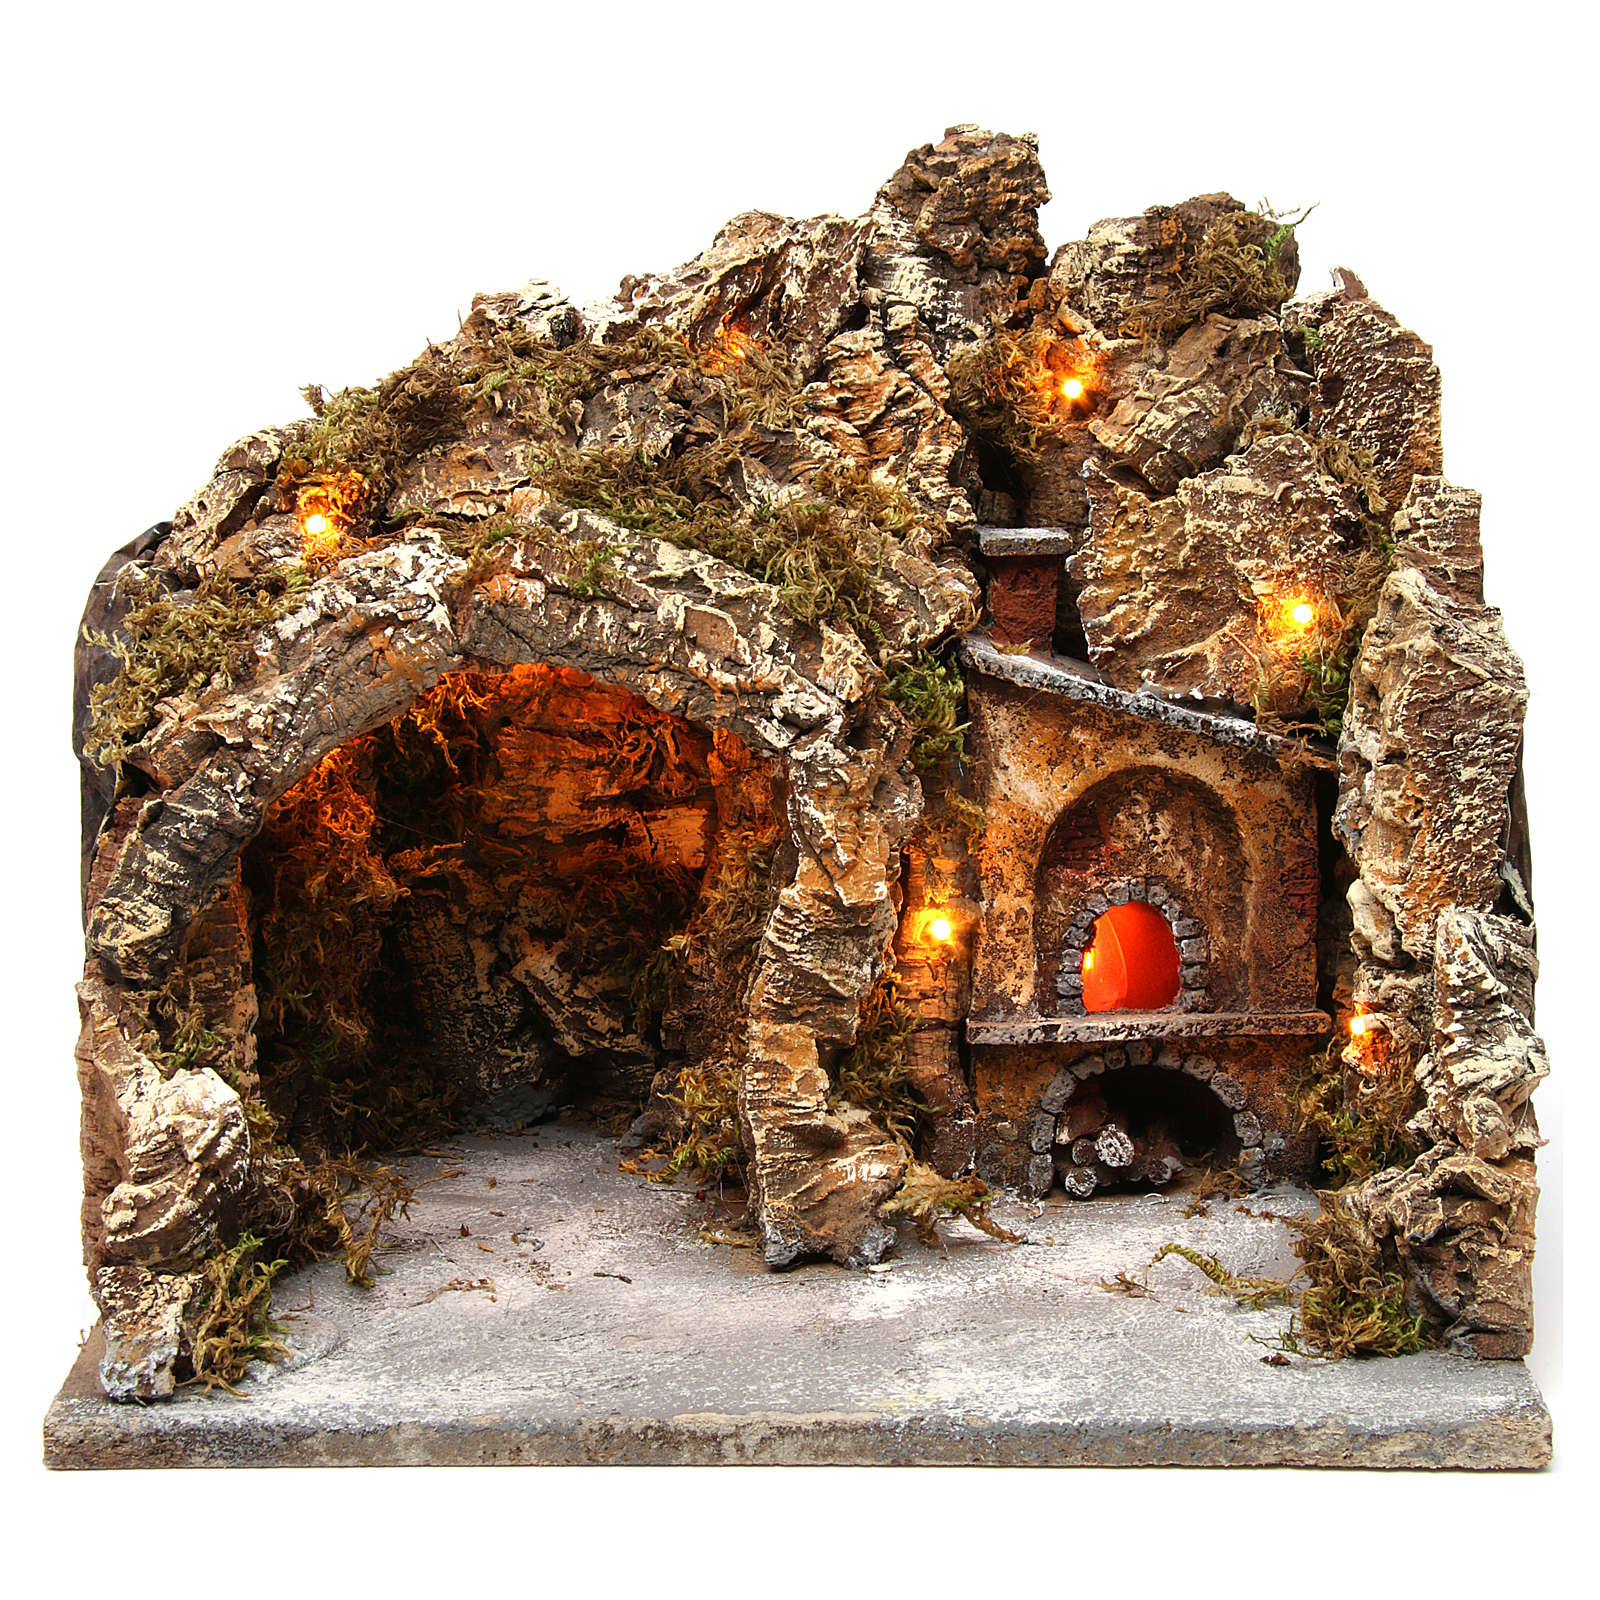 Nativity scene setting with external lights, cave and oven 30x35x30 cm, Neapolitan style 4